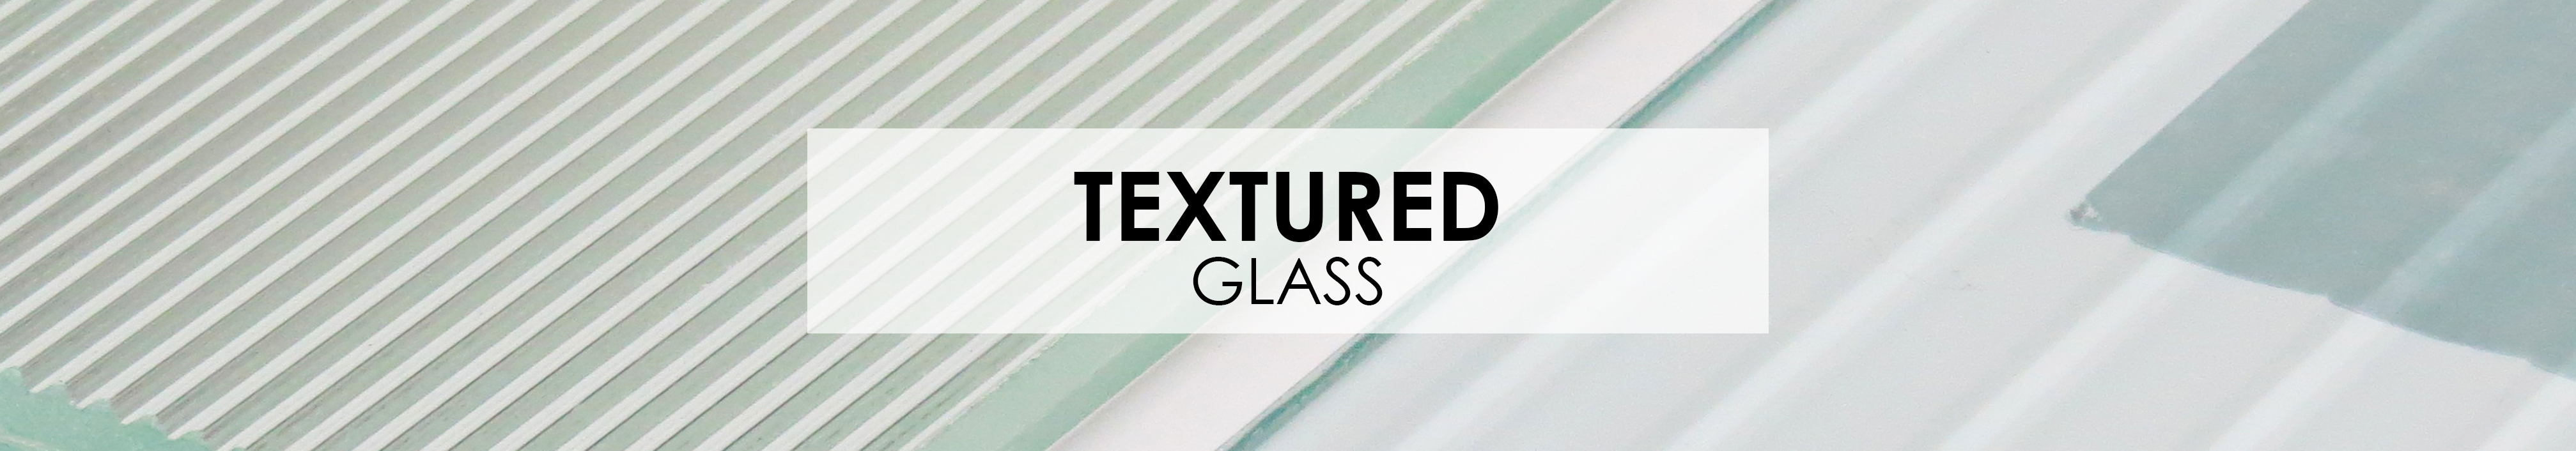 Architectural Decorative Glass Textured